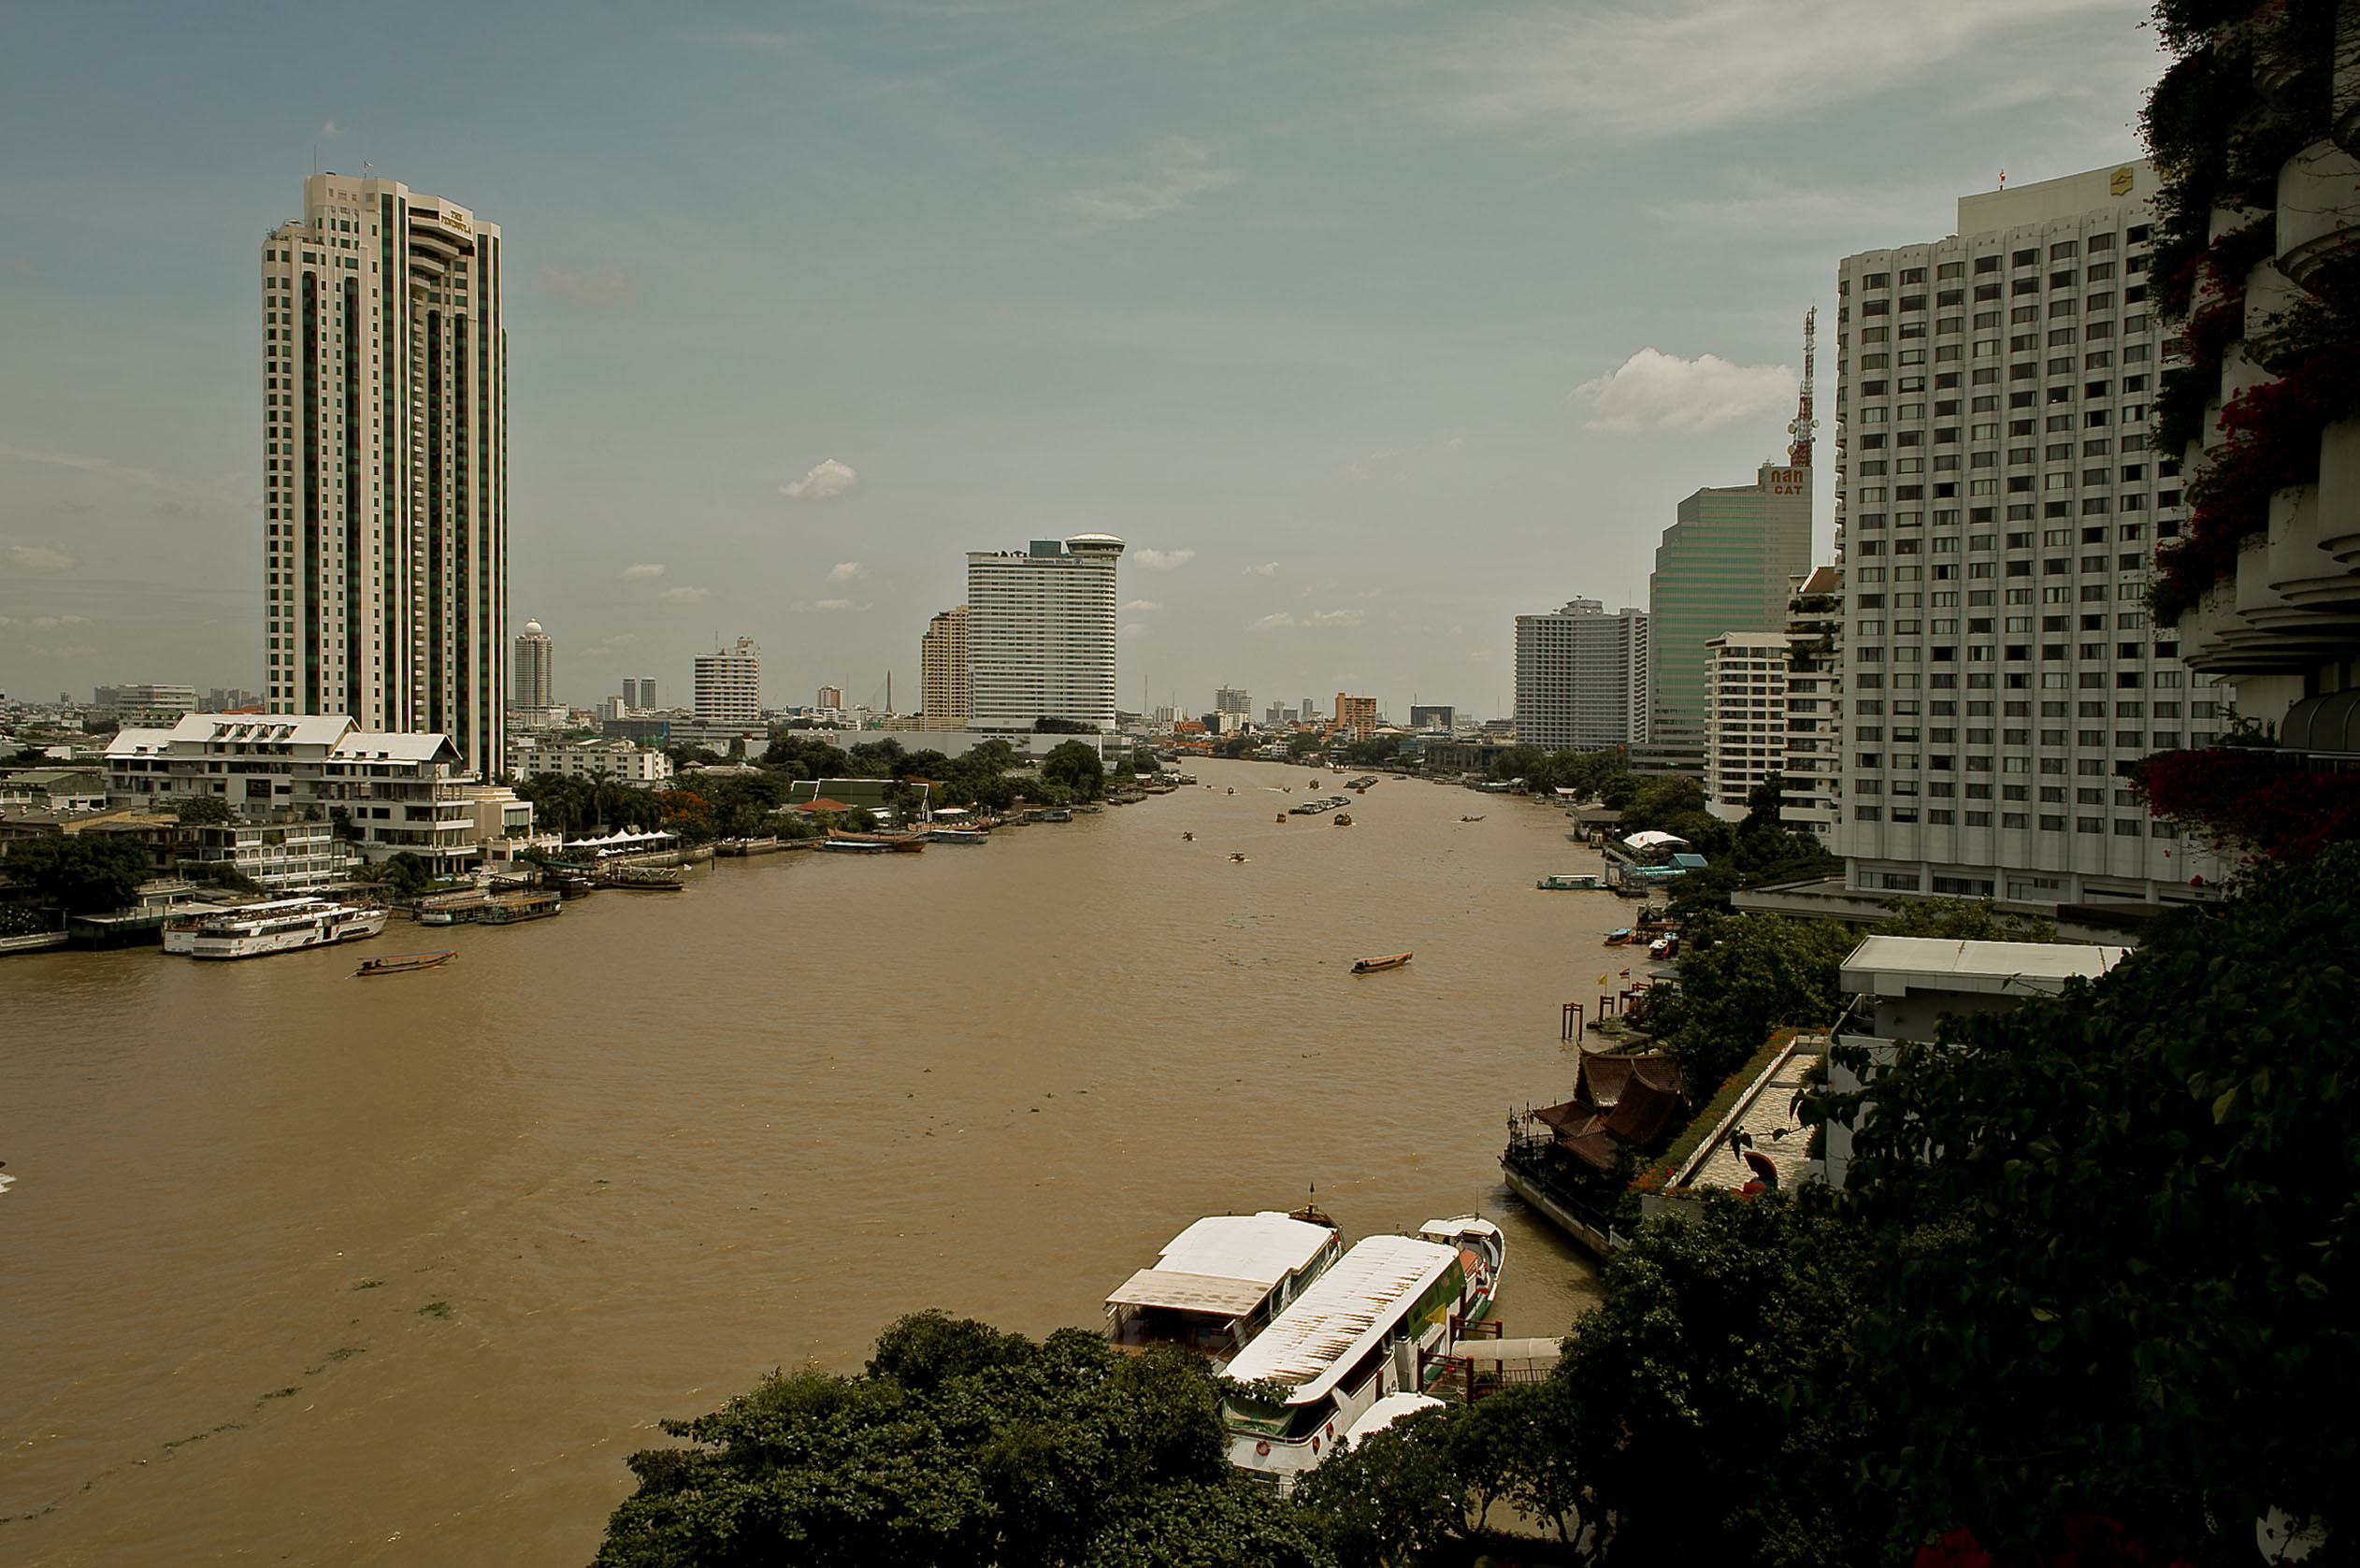 Day of 7-10-11 on Chao Phraya